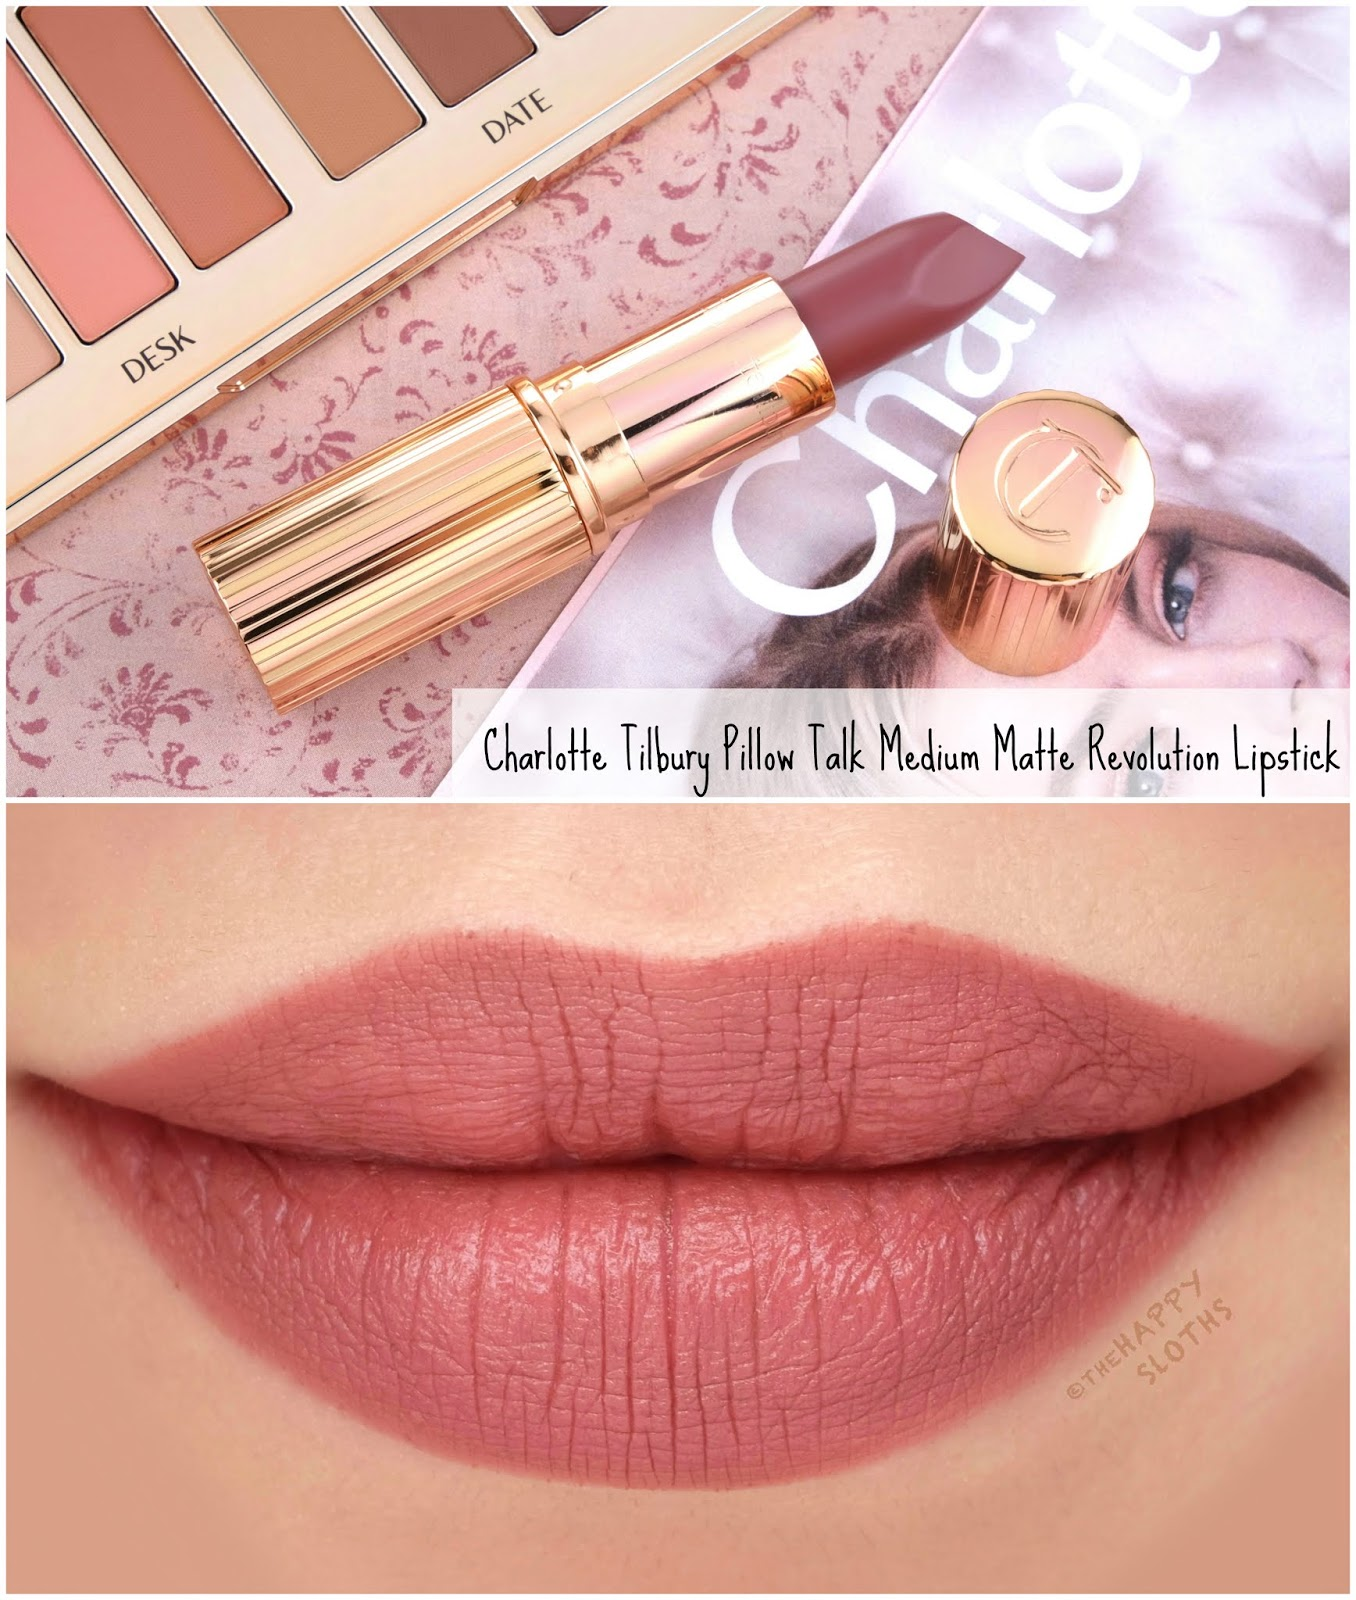 Charlotte Tilbury | Pillow Talk Medium Lipstick: Review and Swatches